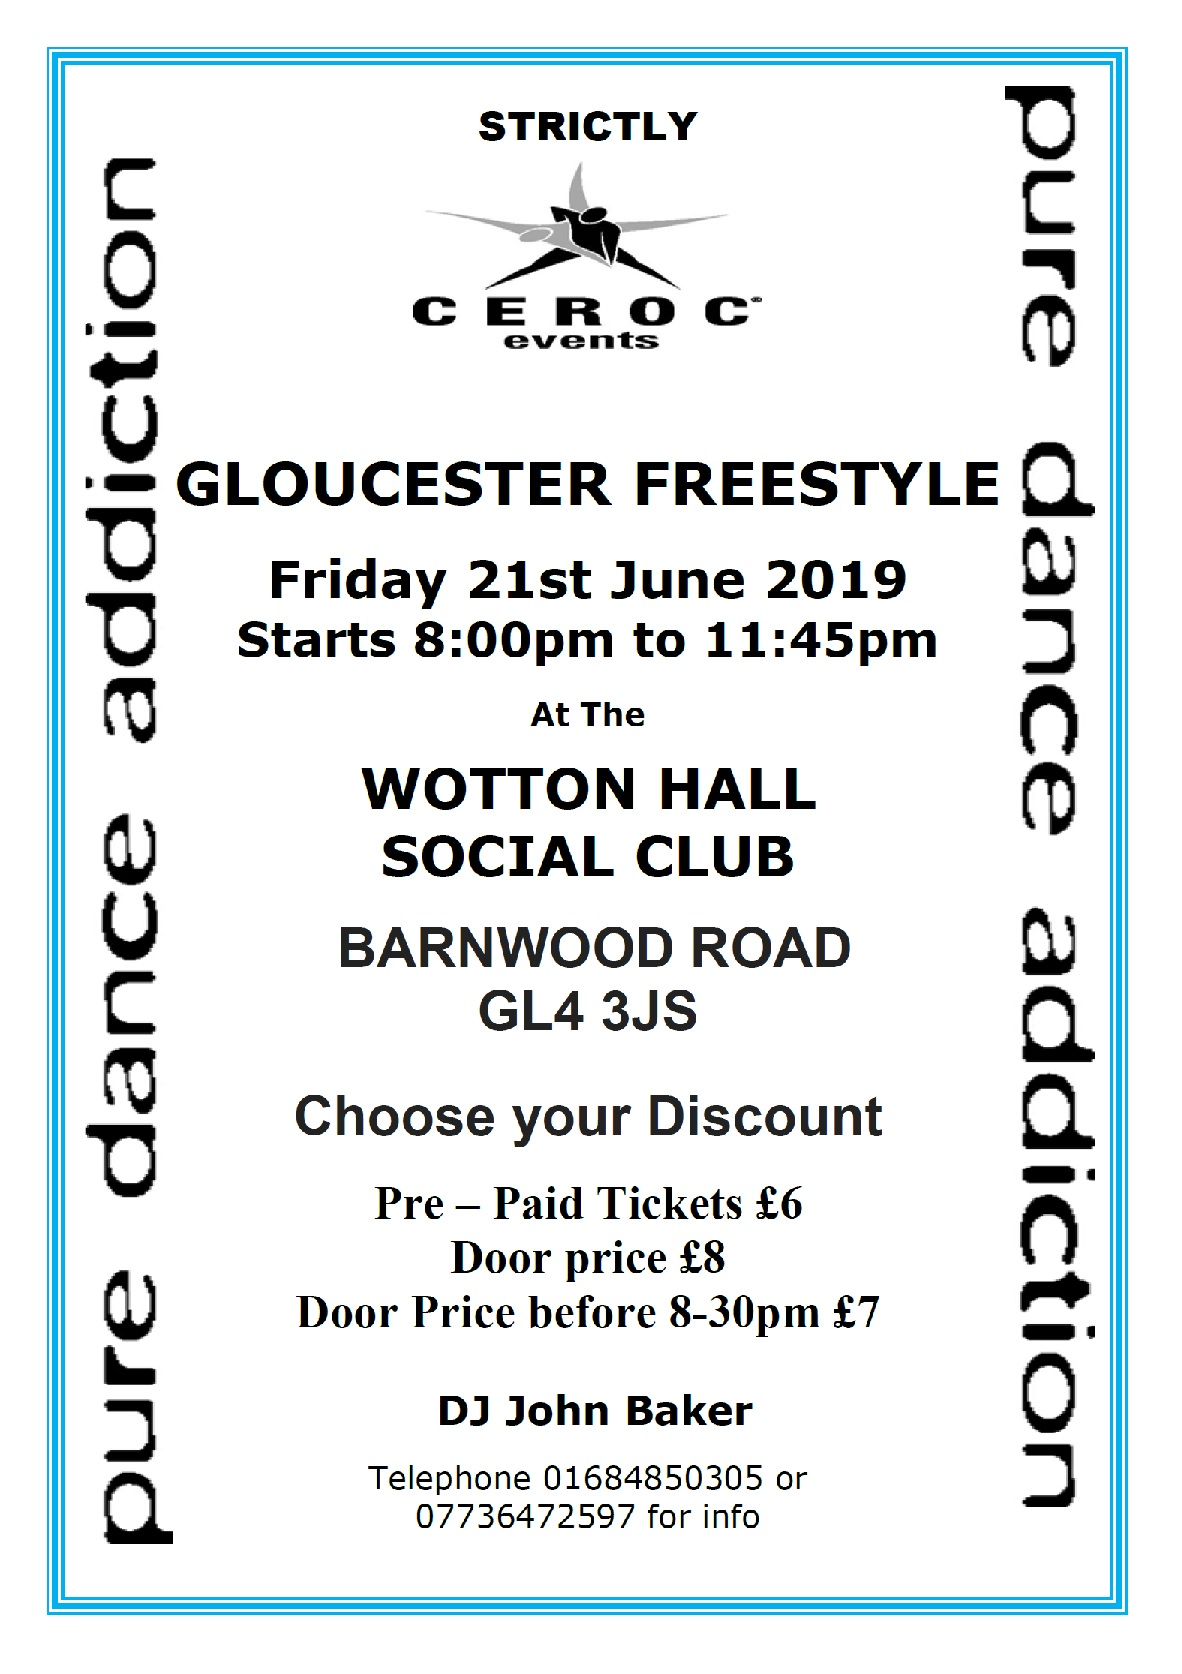 JUNE 21ST 2019 CEROC Gloucester freestylE